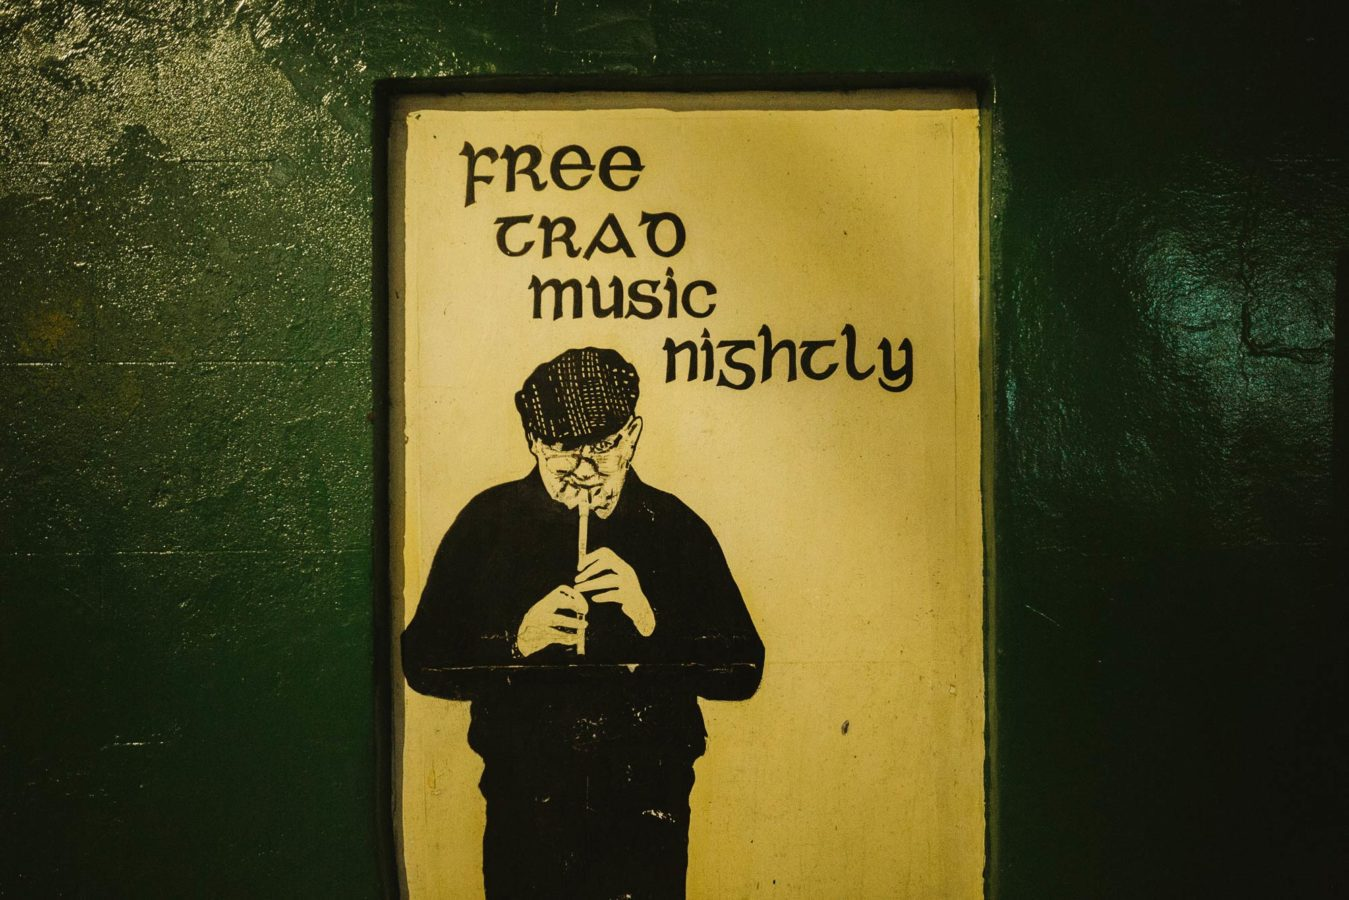 A picture of a man playing irish music on a pub wall